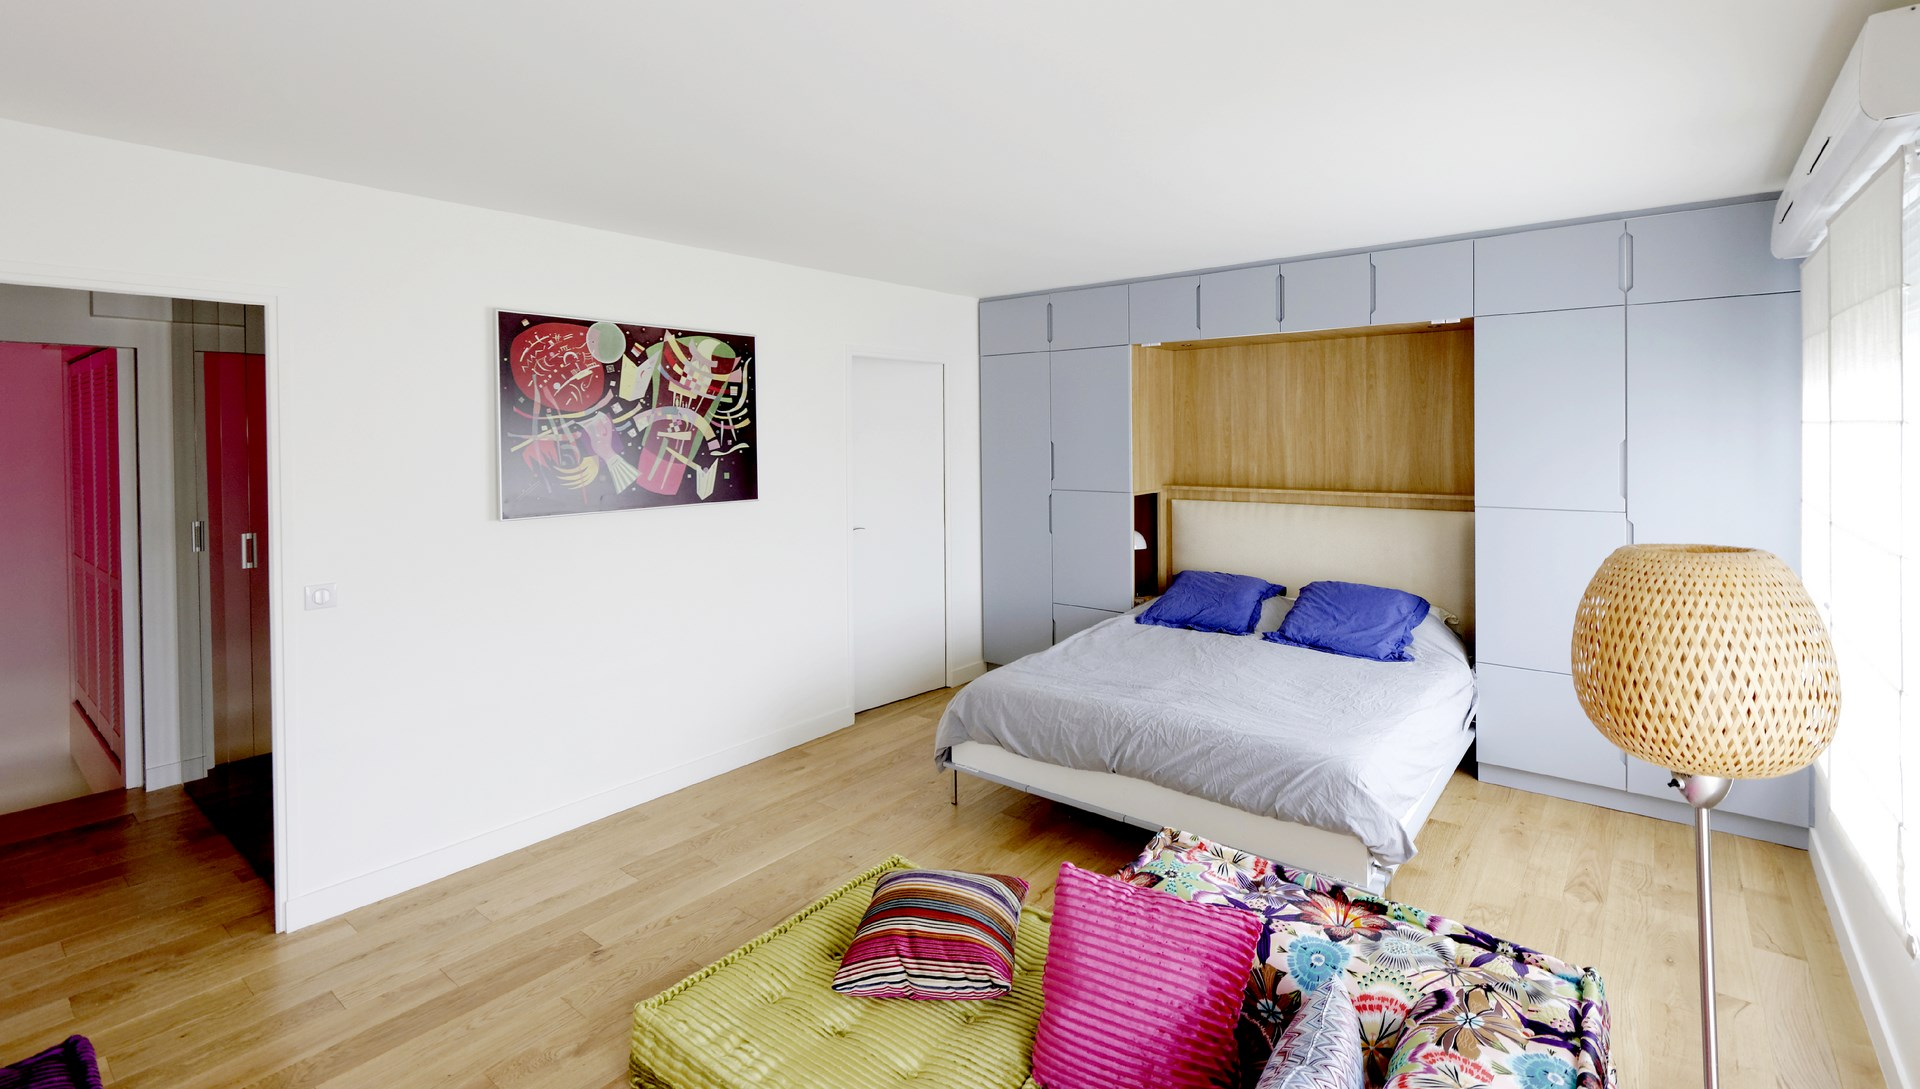 Duplex avec suite parentale zen transformable salle cin ma for Amenagement chambre parents